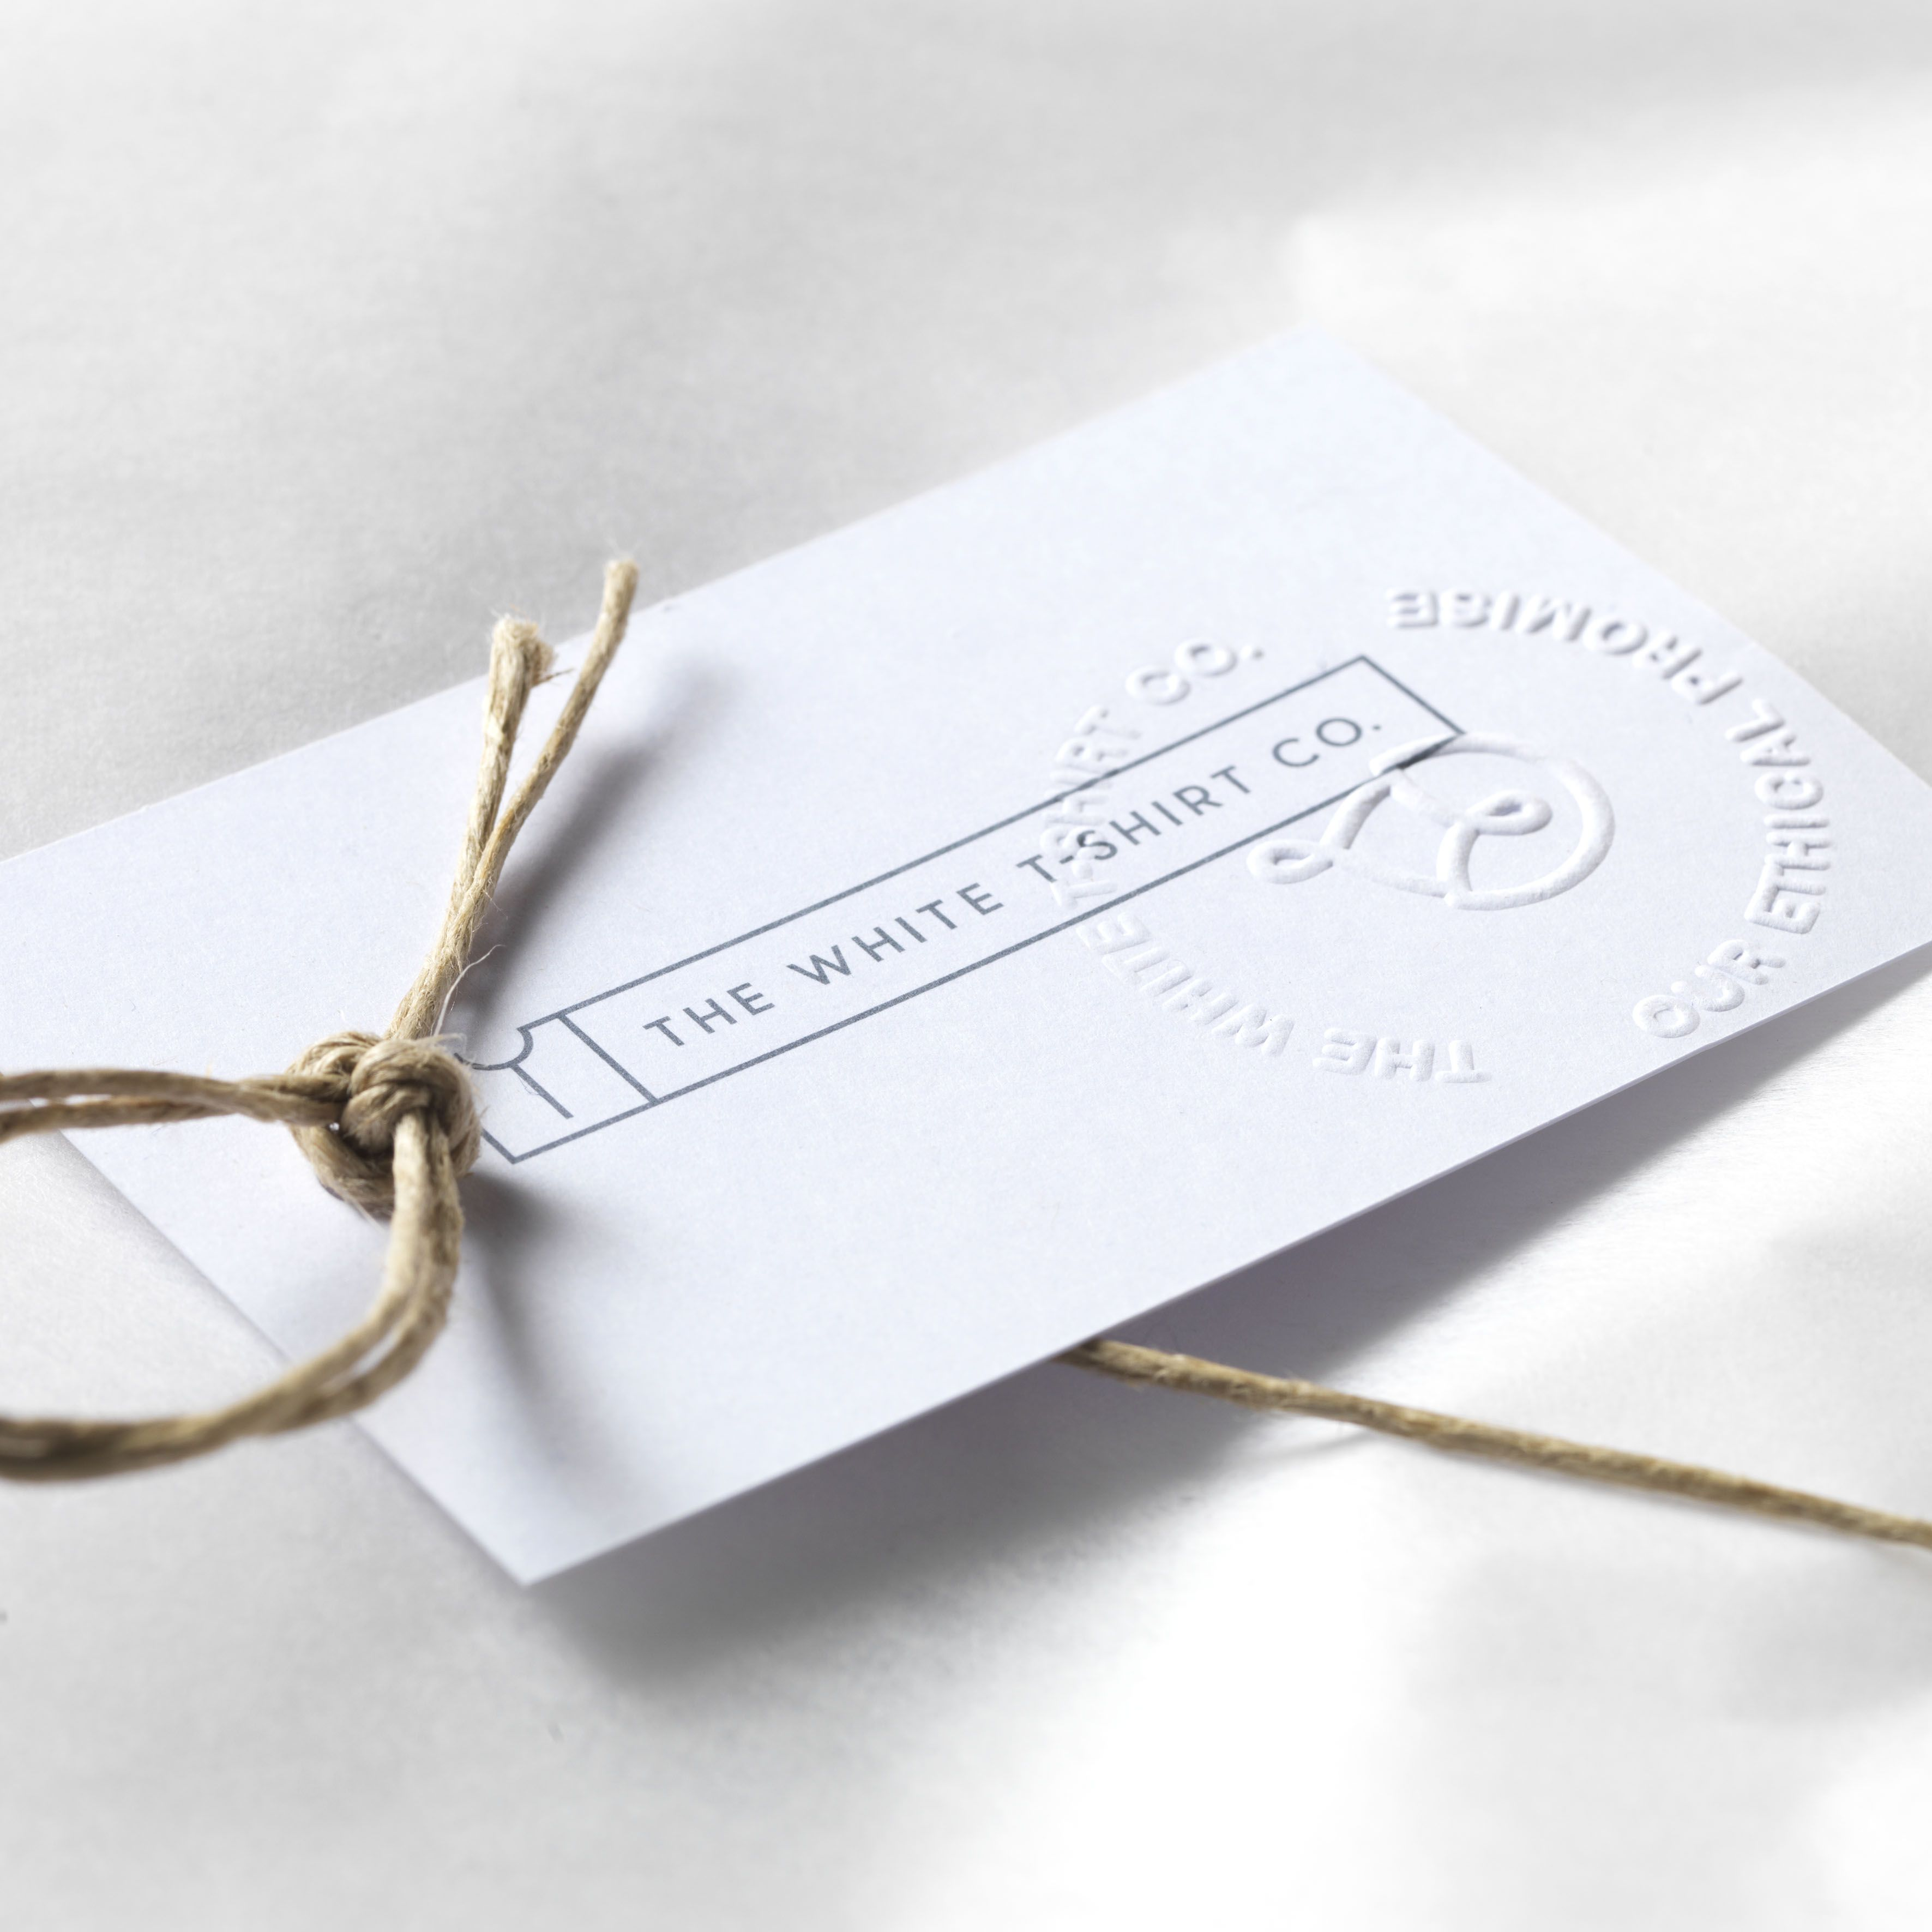 Our embossed gift tag and trim